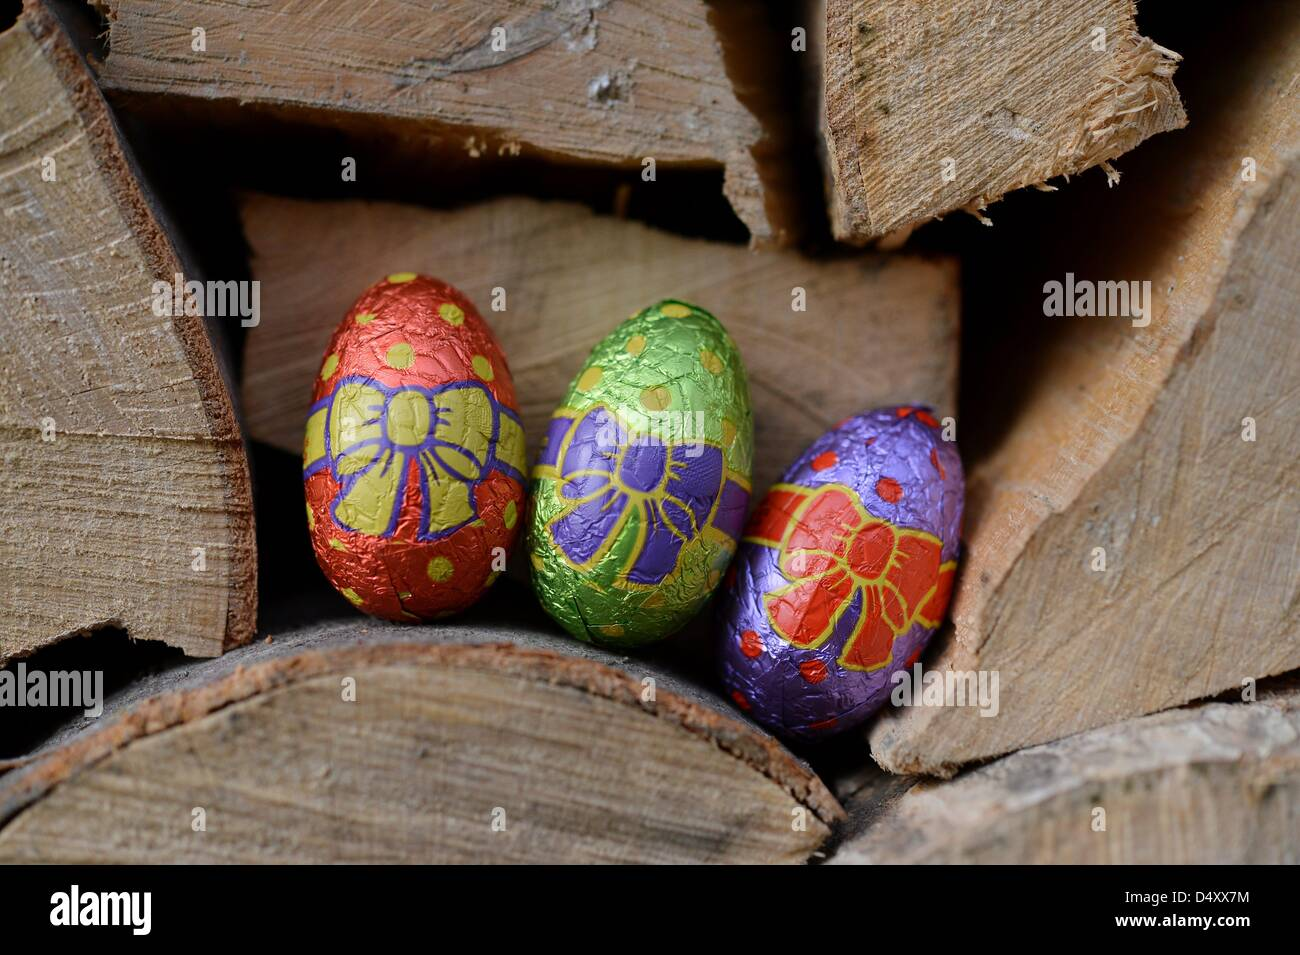 A hidden easter surprise in the garden. Photo: Frank May Stock Photo